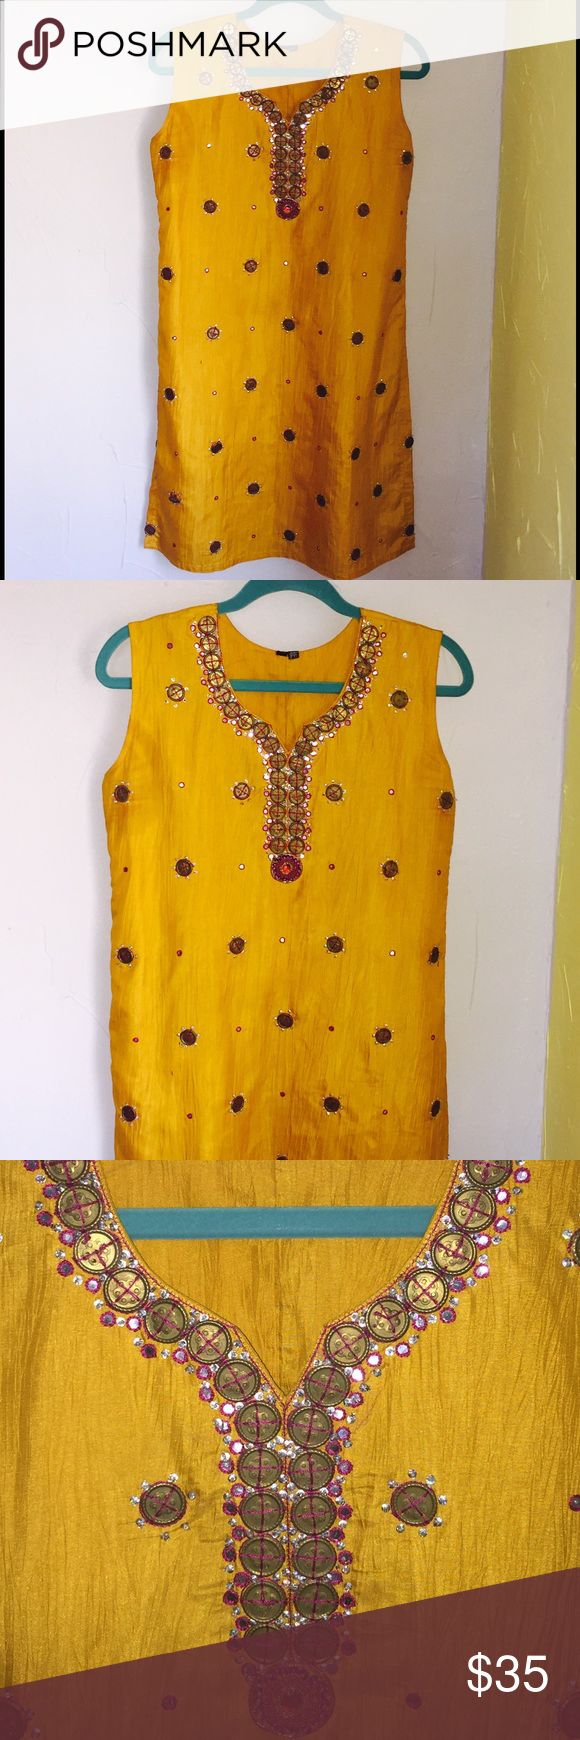 "Silk tunic Mustard yellow silk fully lined sleeve less embellished with metal sequin and beads with thread work bohemian style side slits  length 36"" armpit to armpit 21 waist 19"" hip 21"" arm hole 20"" circumference side slits 13"" will look great with skinny jeans Tops Tunics"